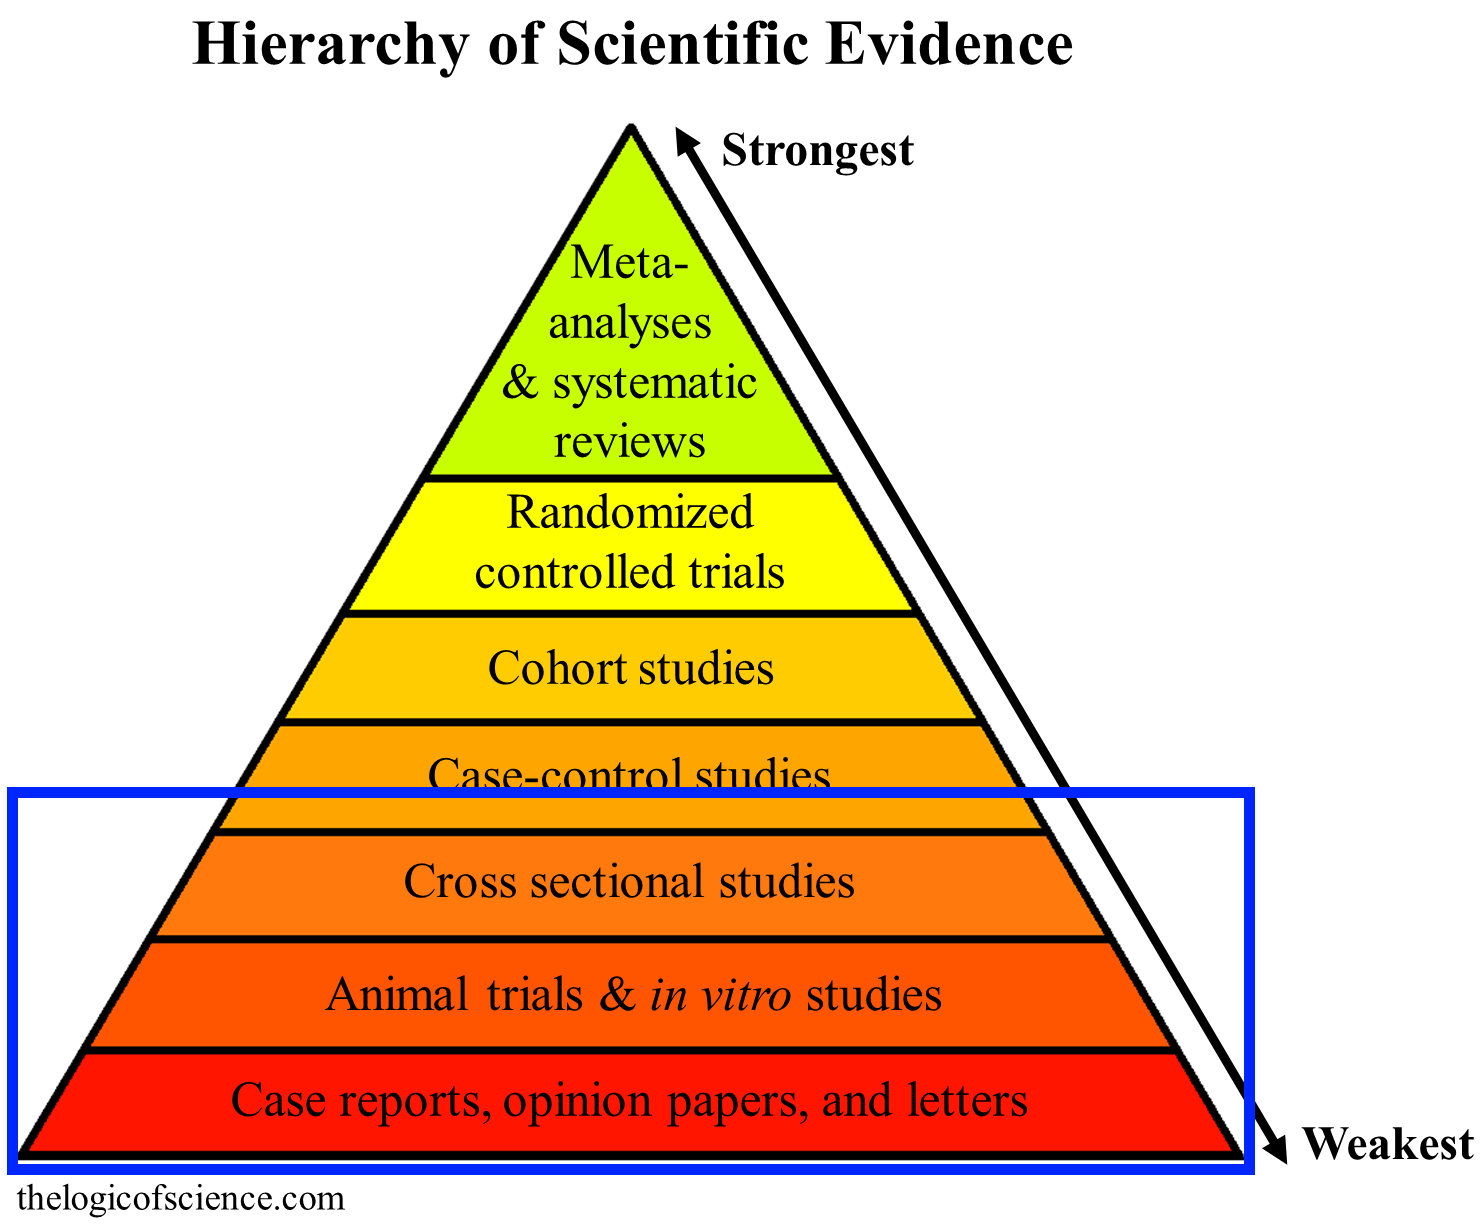 007 Hierarchy Of Evidence3 Research Paper Autism Shocking Questions Full